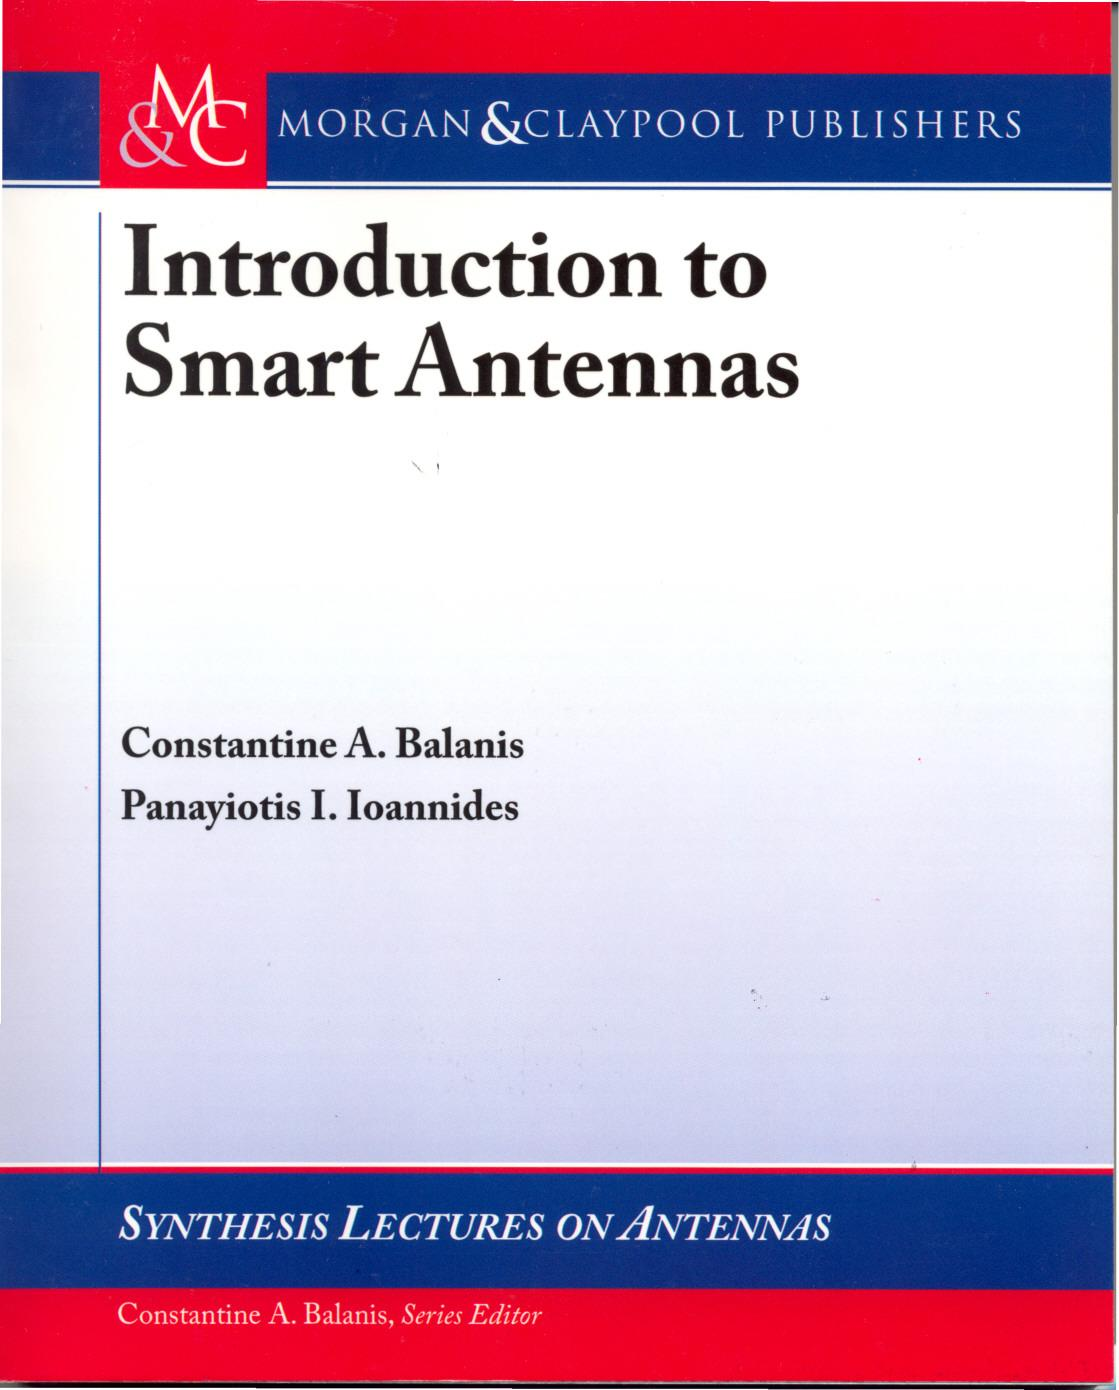 thesis on smart antenna system Smart antenna system which enables ultra high speed doa (direction of arrival) estimation and beamforming at reasonable cost is desired for high speed wireless data transmission beyond imt-2000 mobile communication system, ultra high speed wireless data transmission more than 100 mbps will be expected in the near future it.